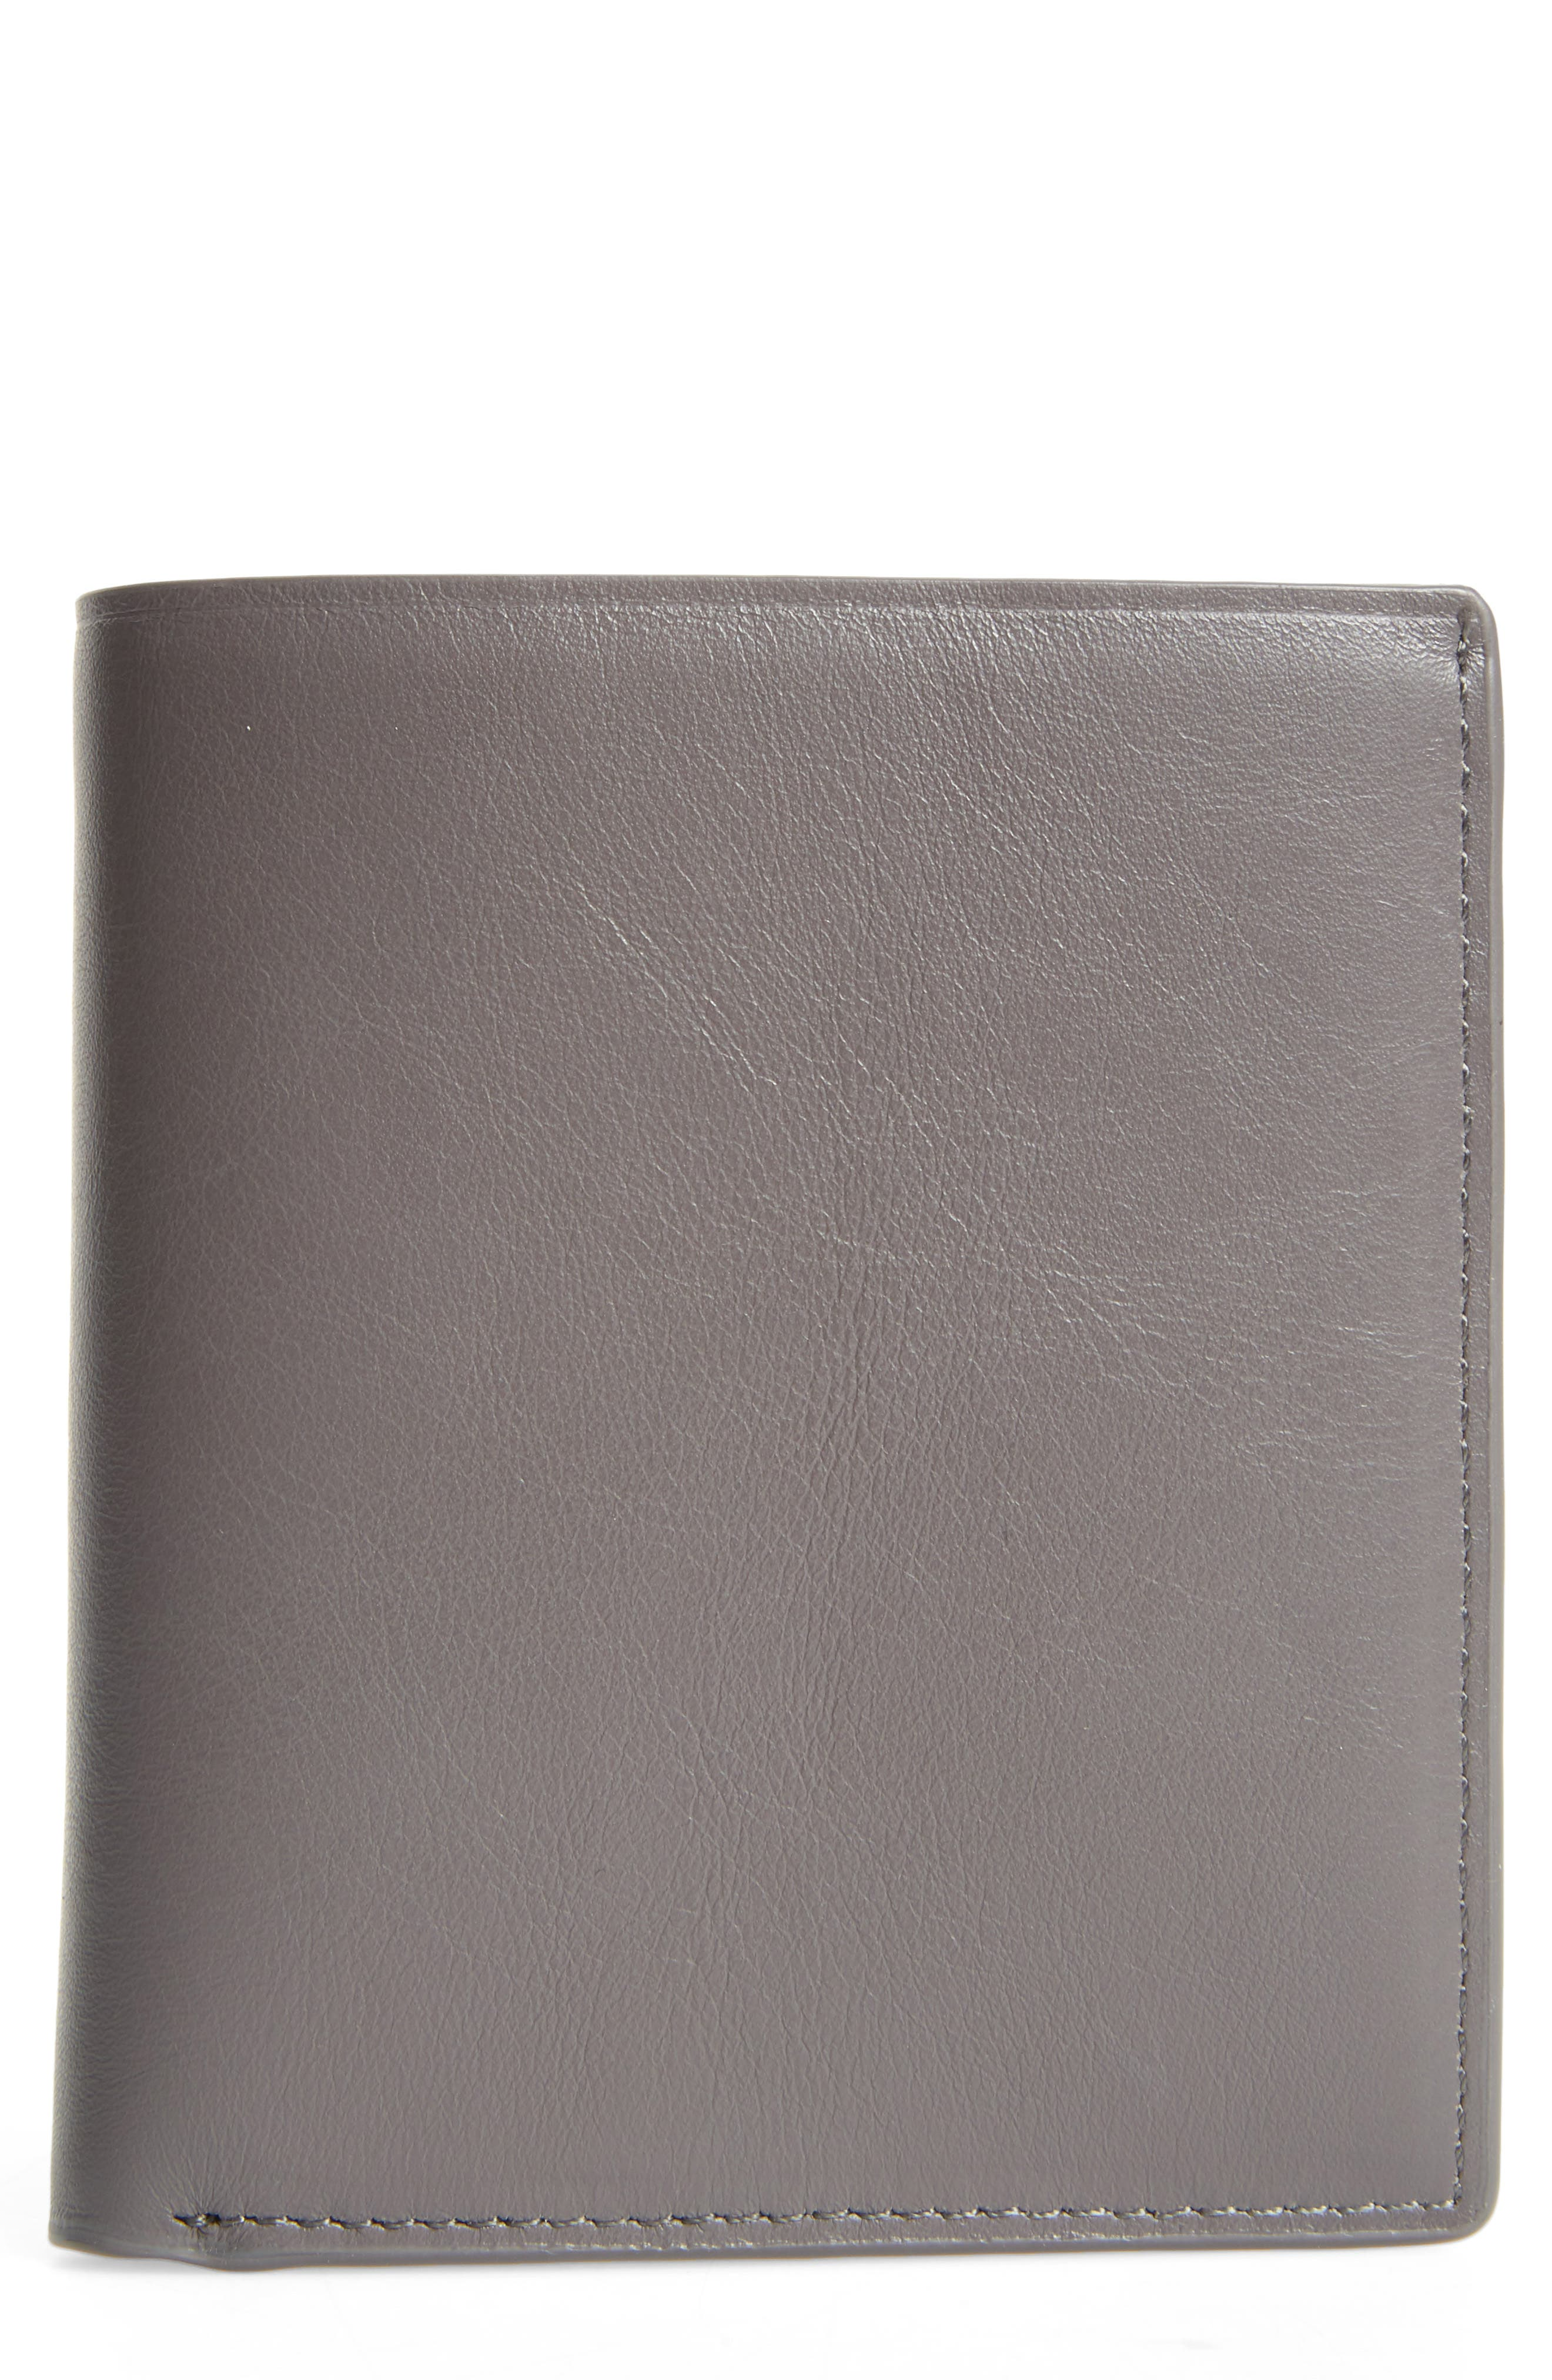 WANT LES ESSENTIELS Bradley Bifold Leather Wallet